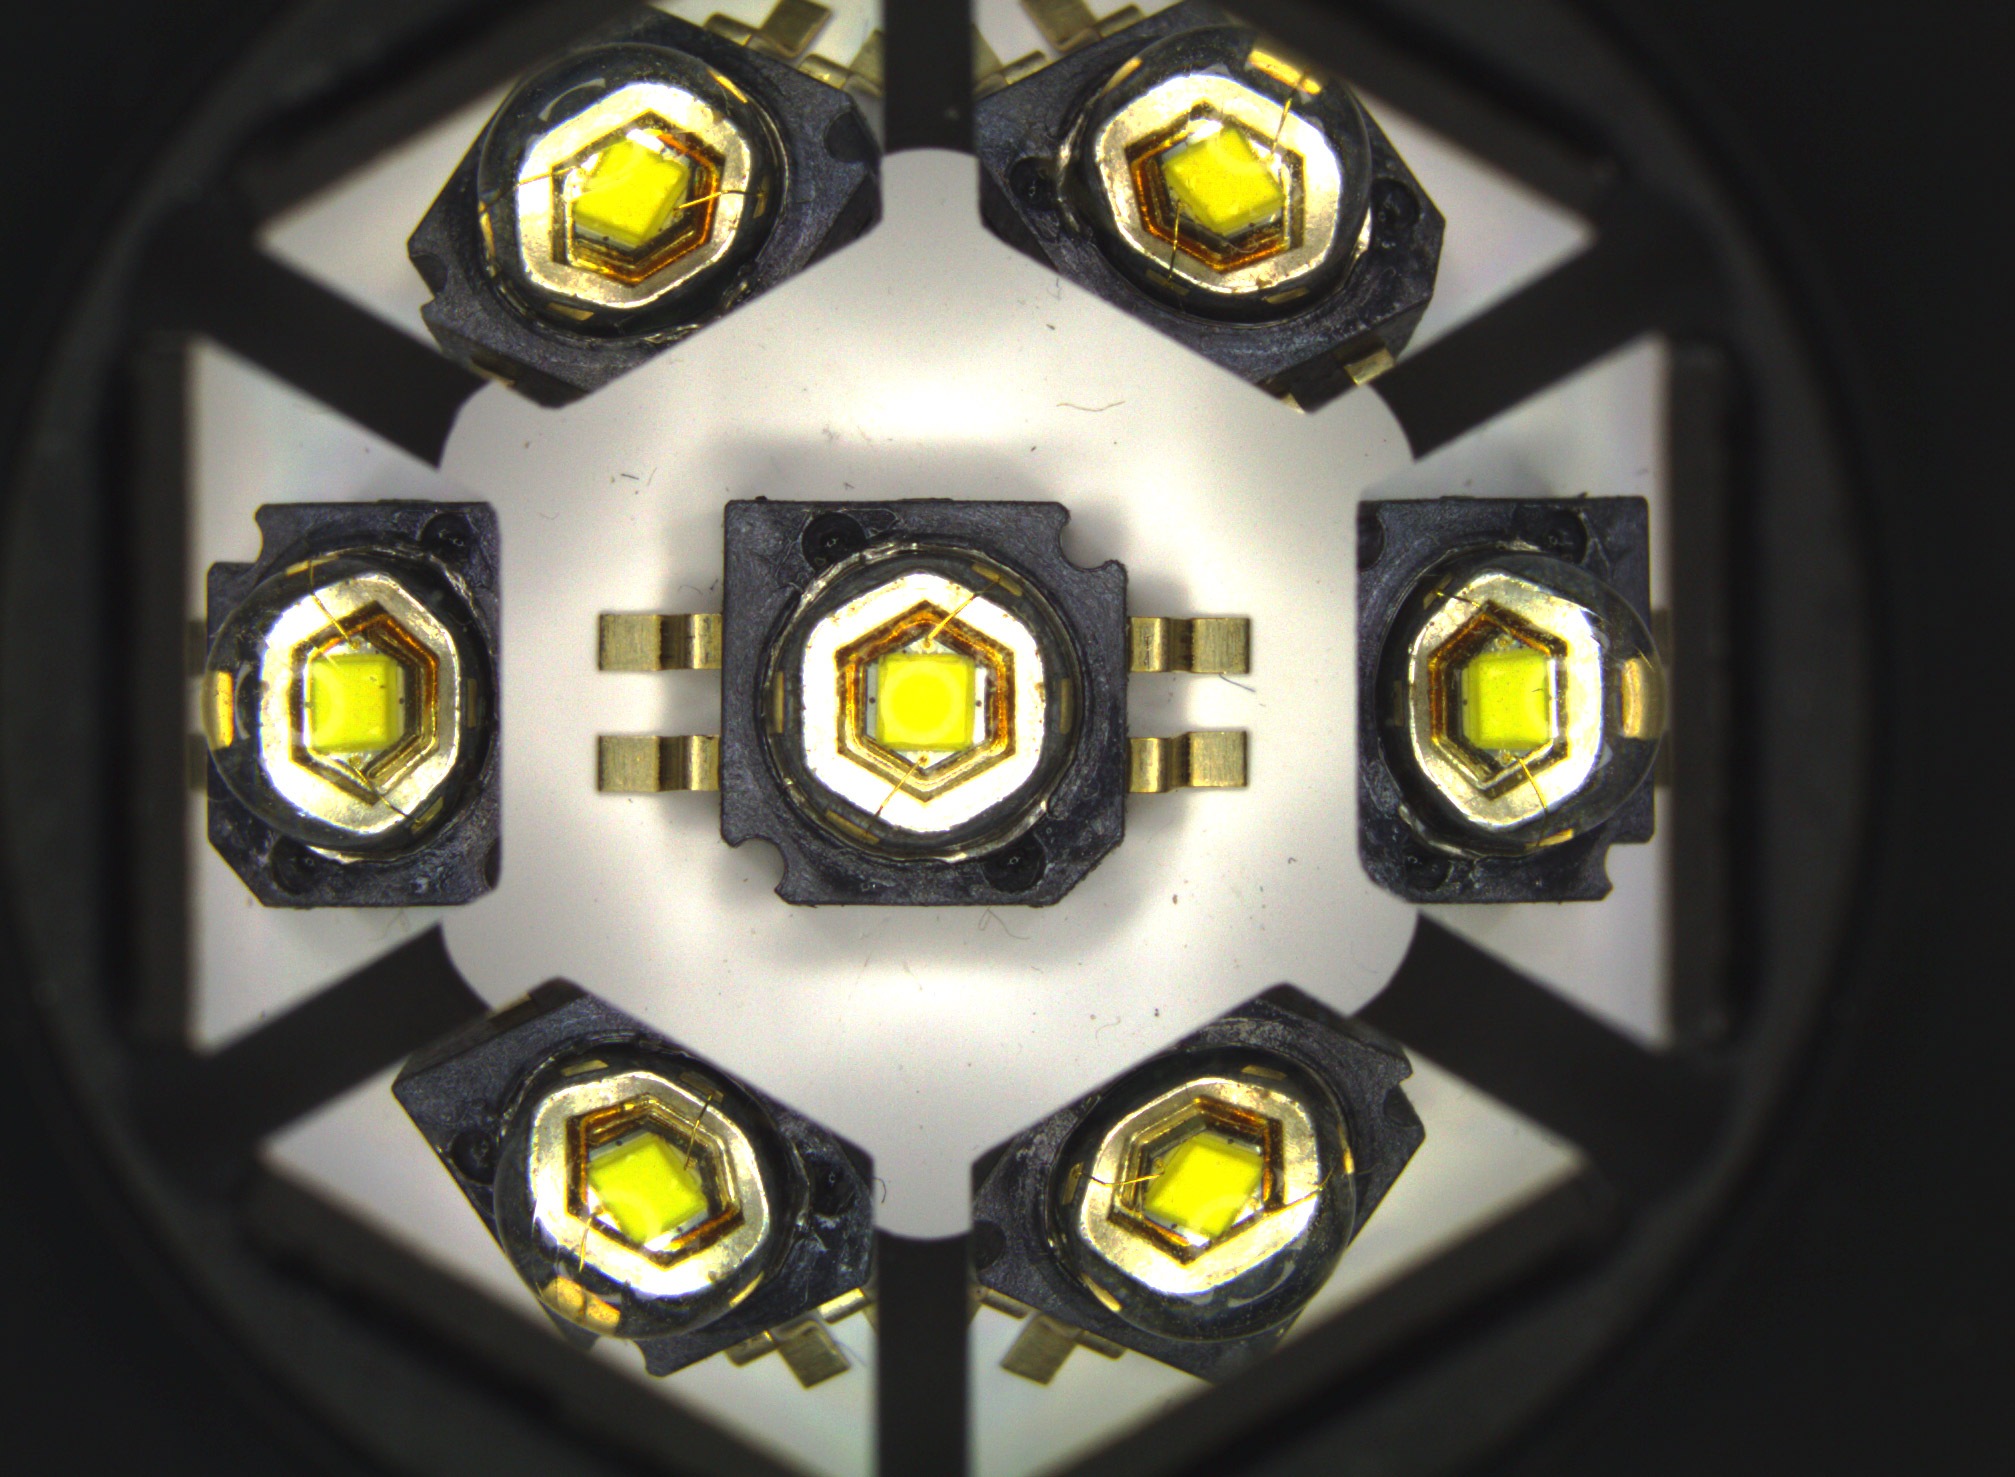 <b>LED quality control:</b> lens scratches, die centering and correct wiring can be inspected and measured.